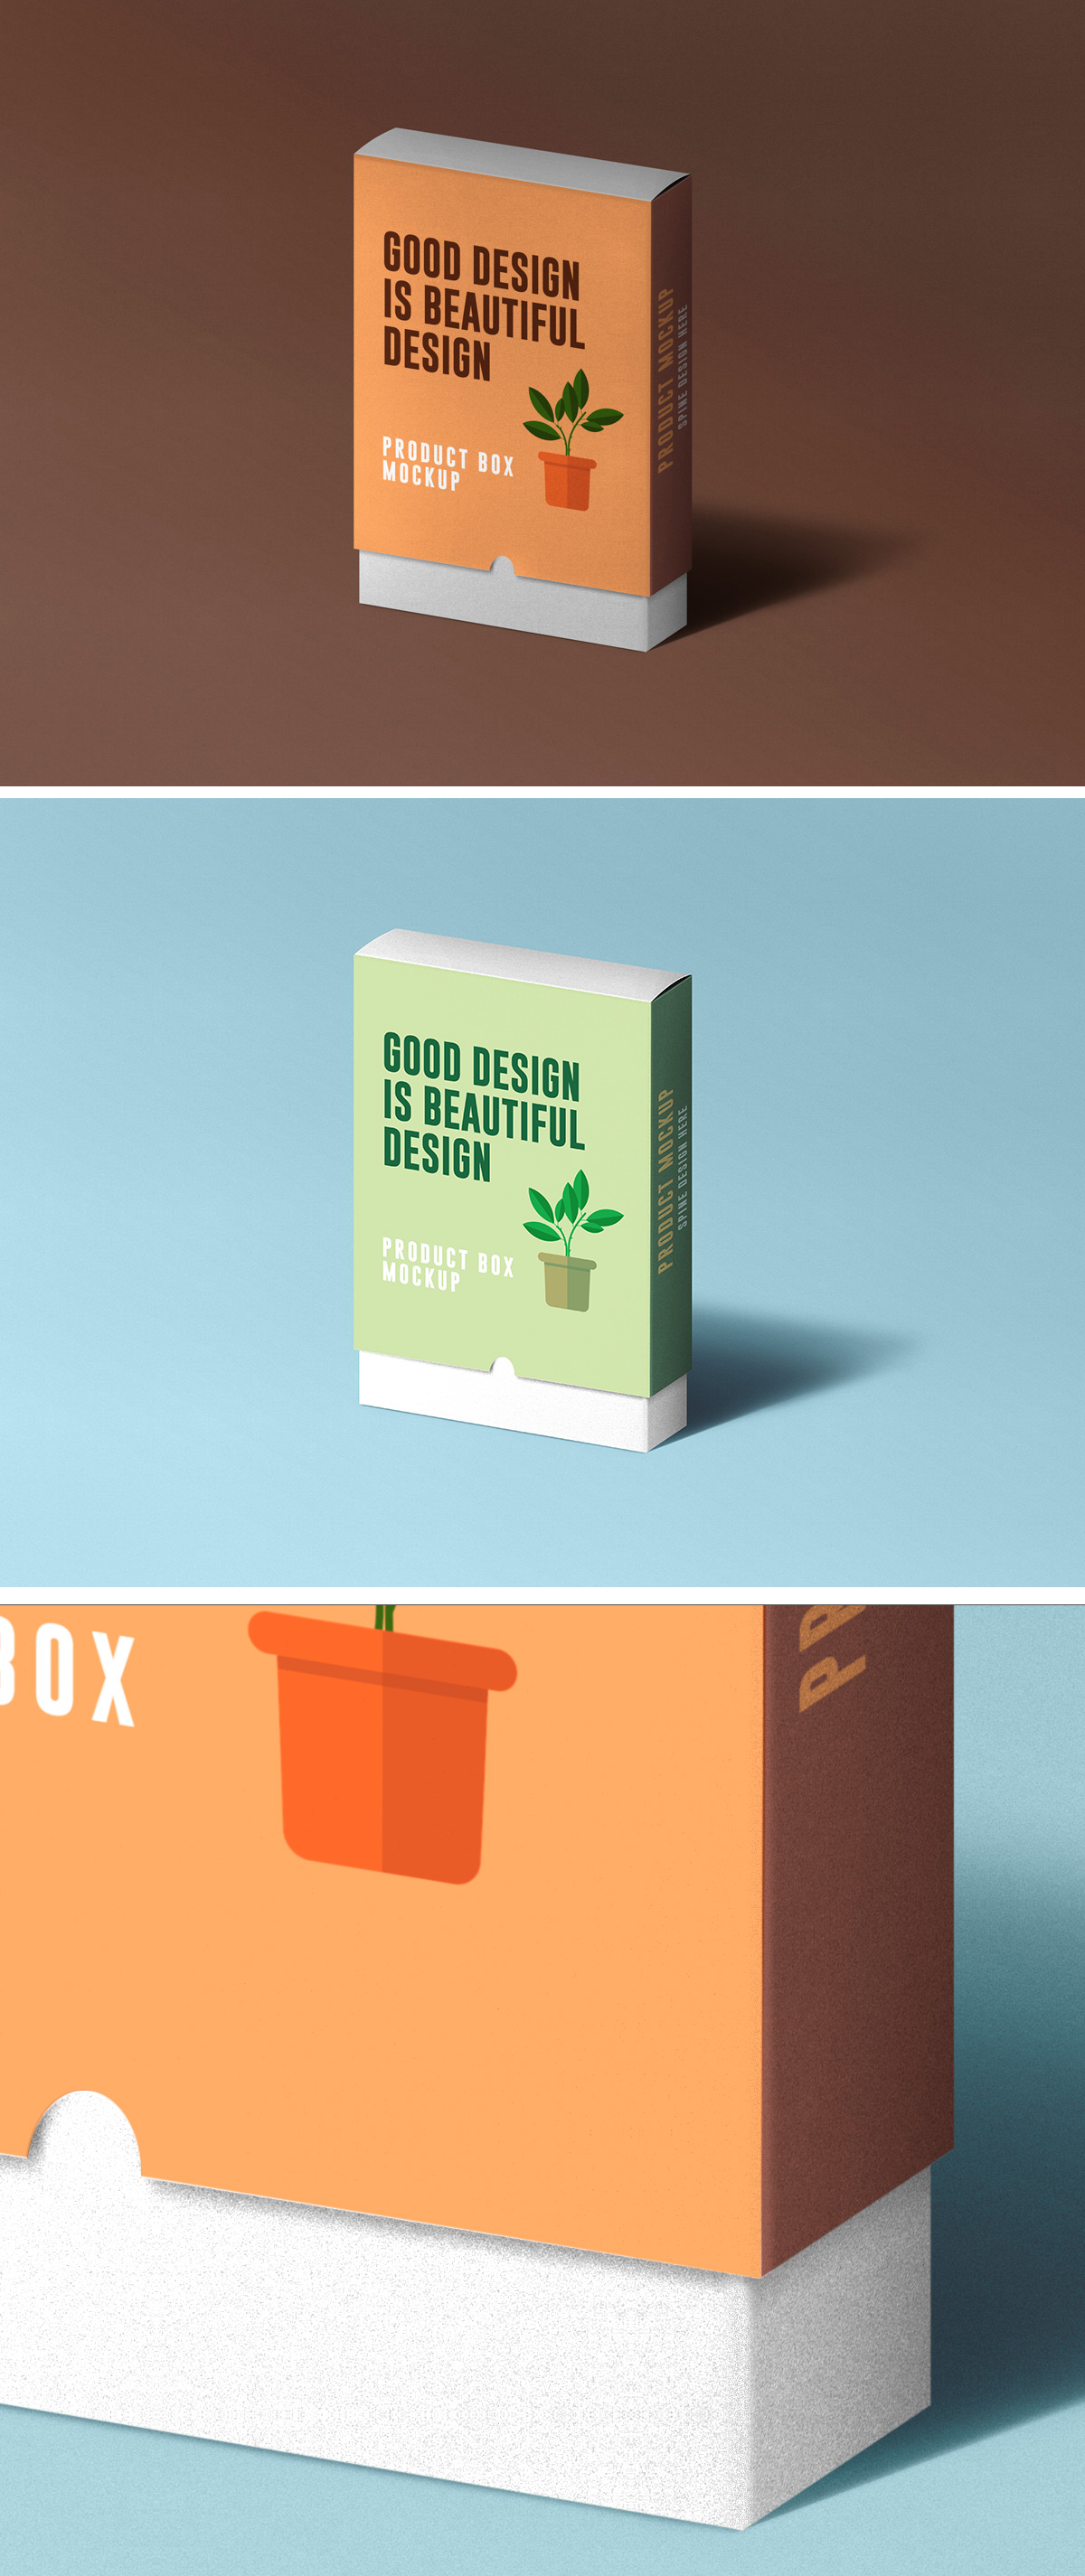 Slide Product Box Mockup